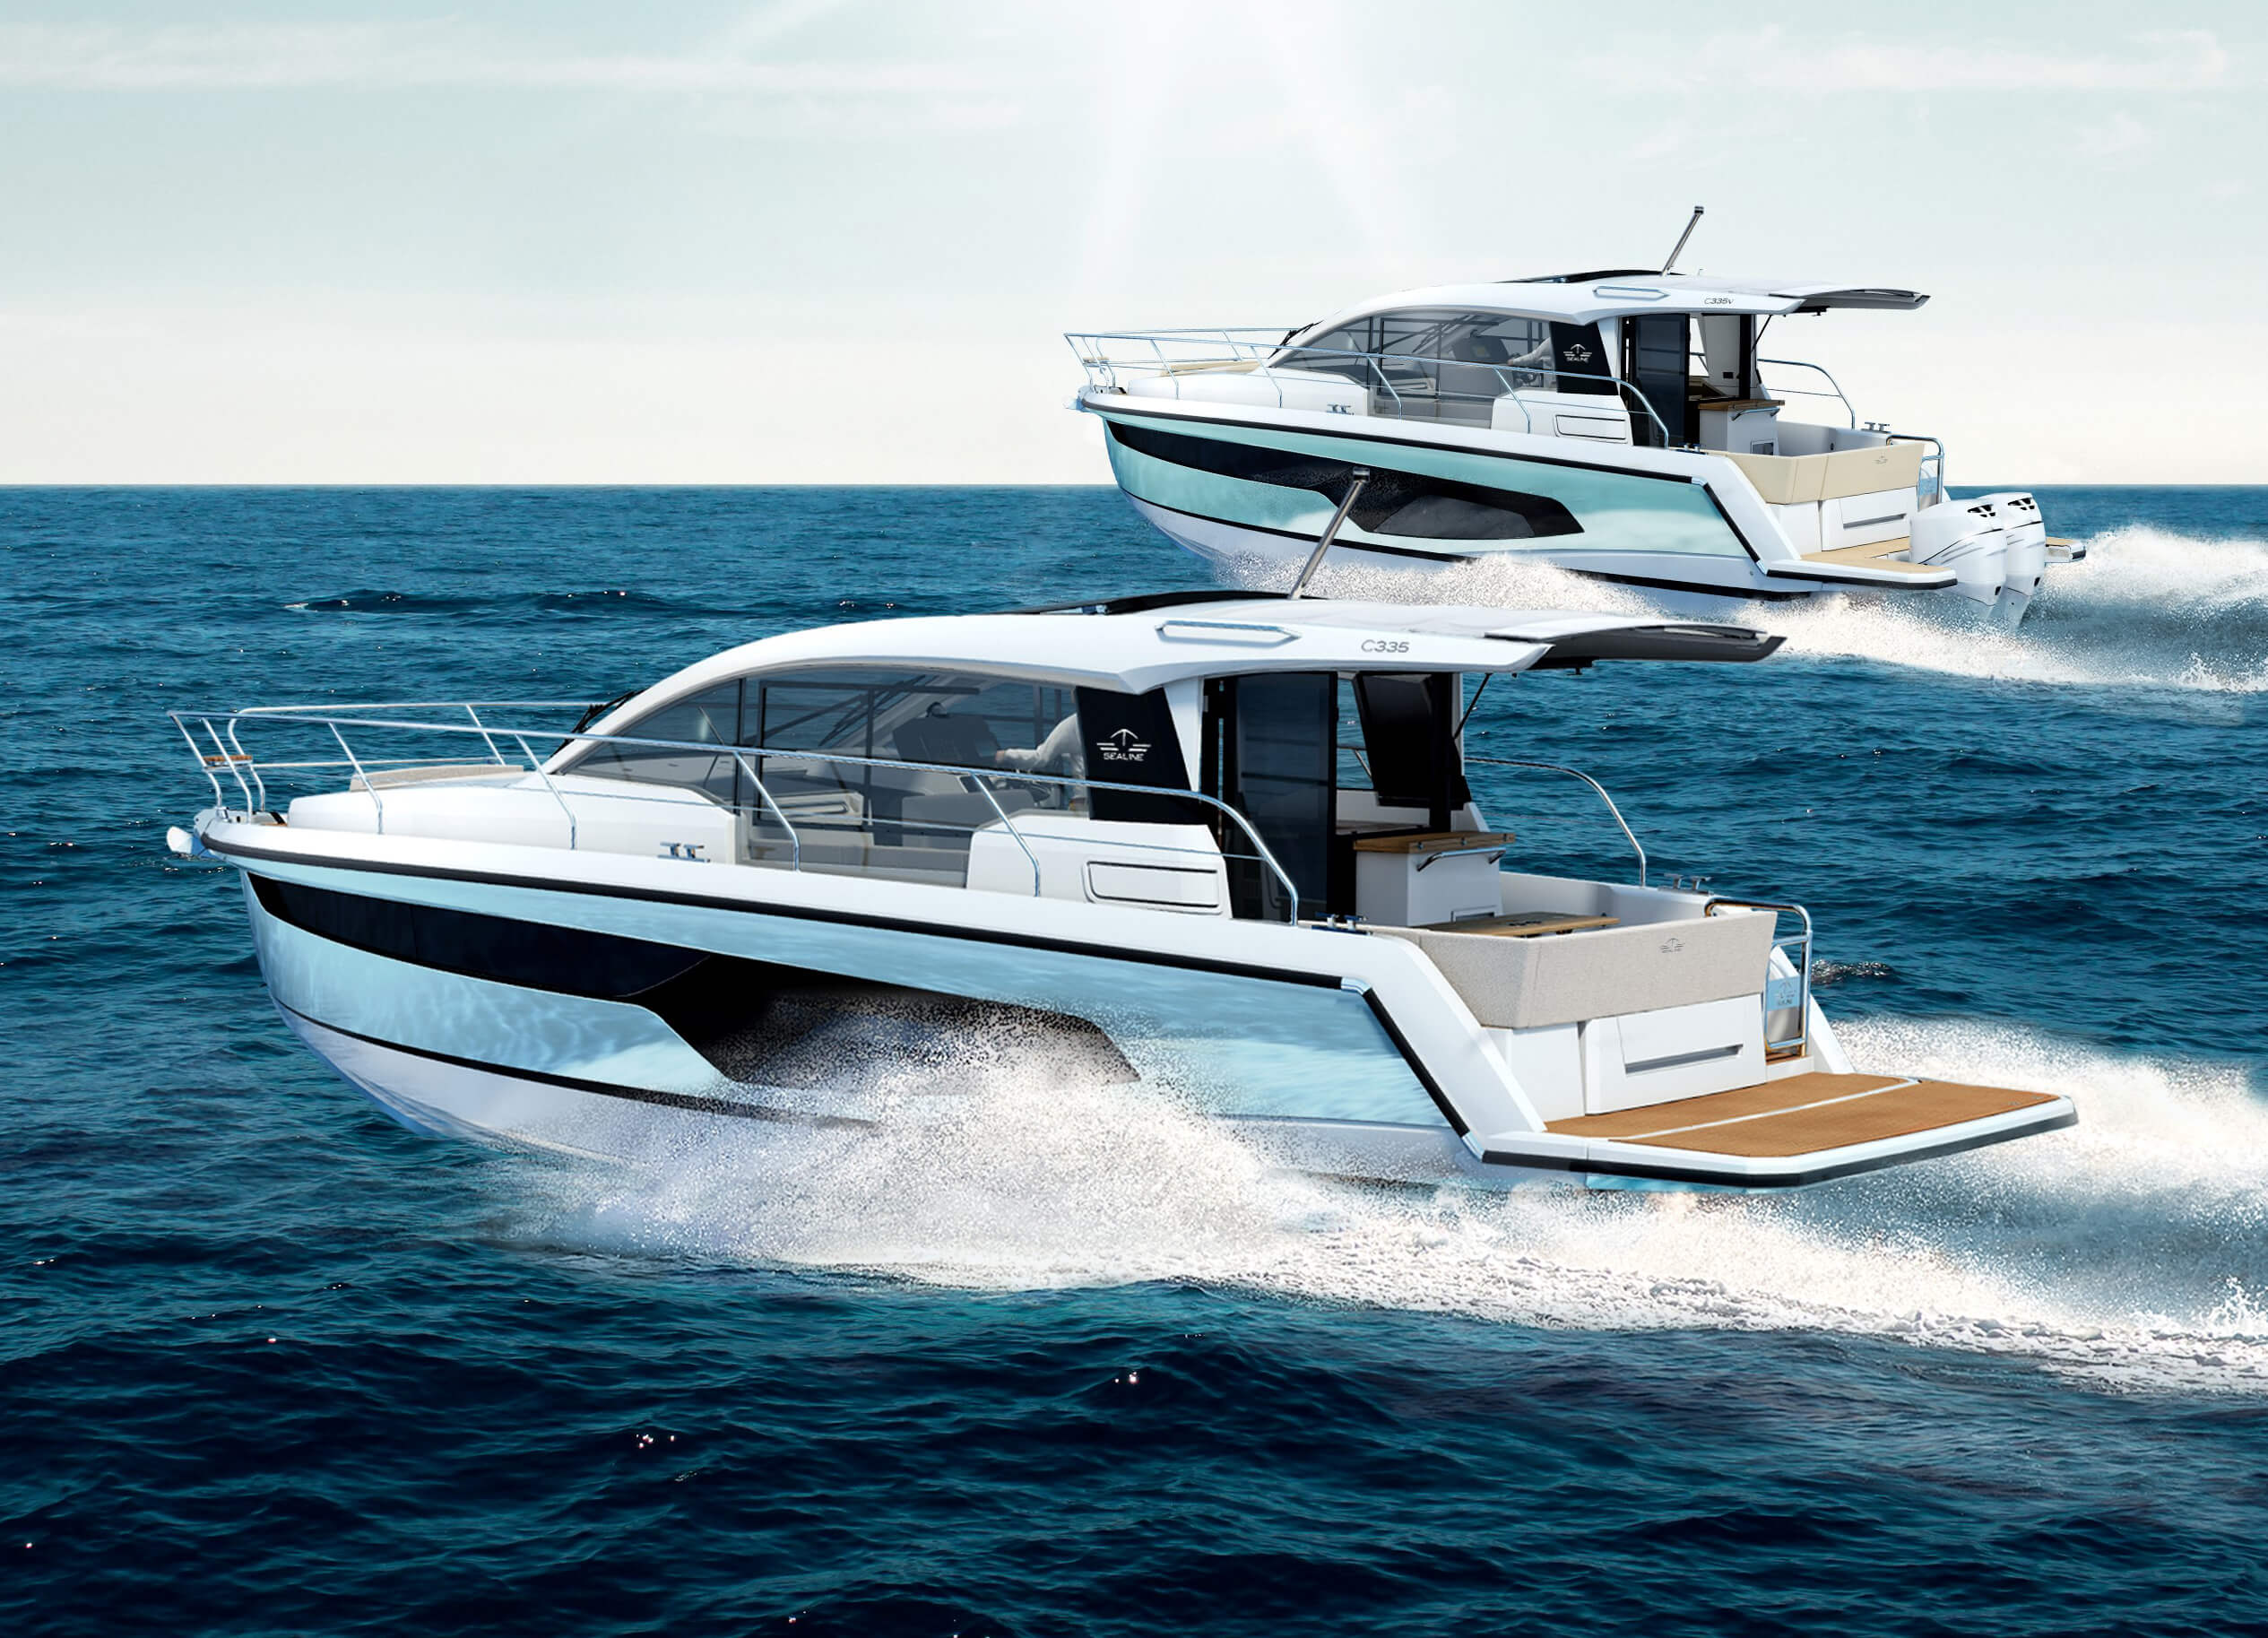 Sealine C335 and Sealine C335v exterior | From the hull shape to the engine, we have pulled out all the stops to ensure you will experience exhilarating moments at sea. | Sealine